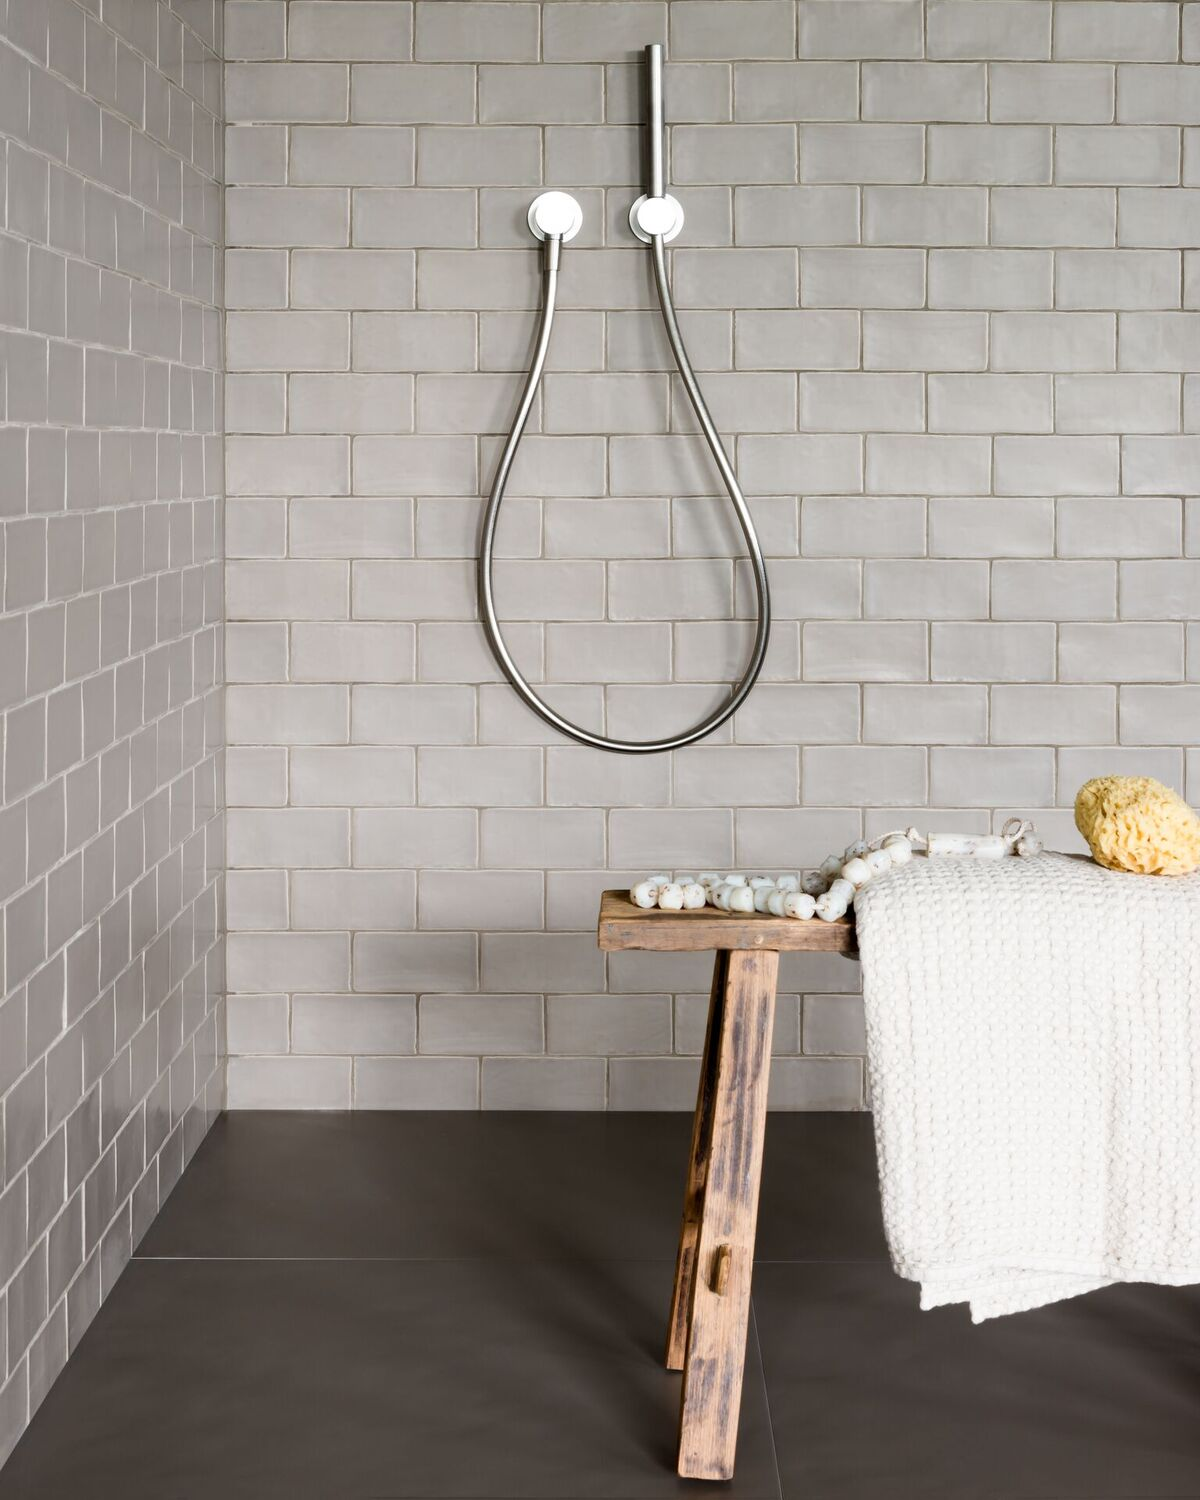 Piet Boon Tiles & Stones by Douglas & Jones in de badkamer - via Koltegels Haarlem